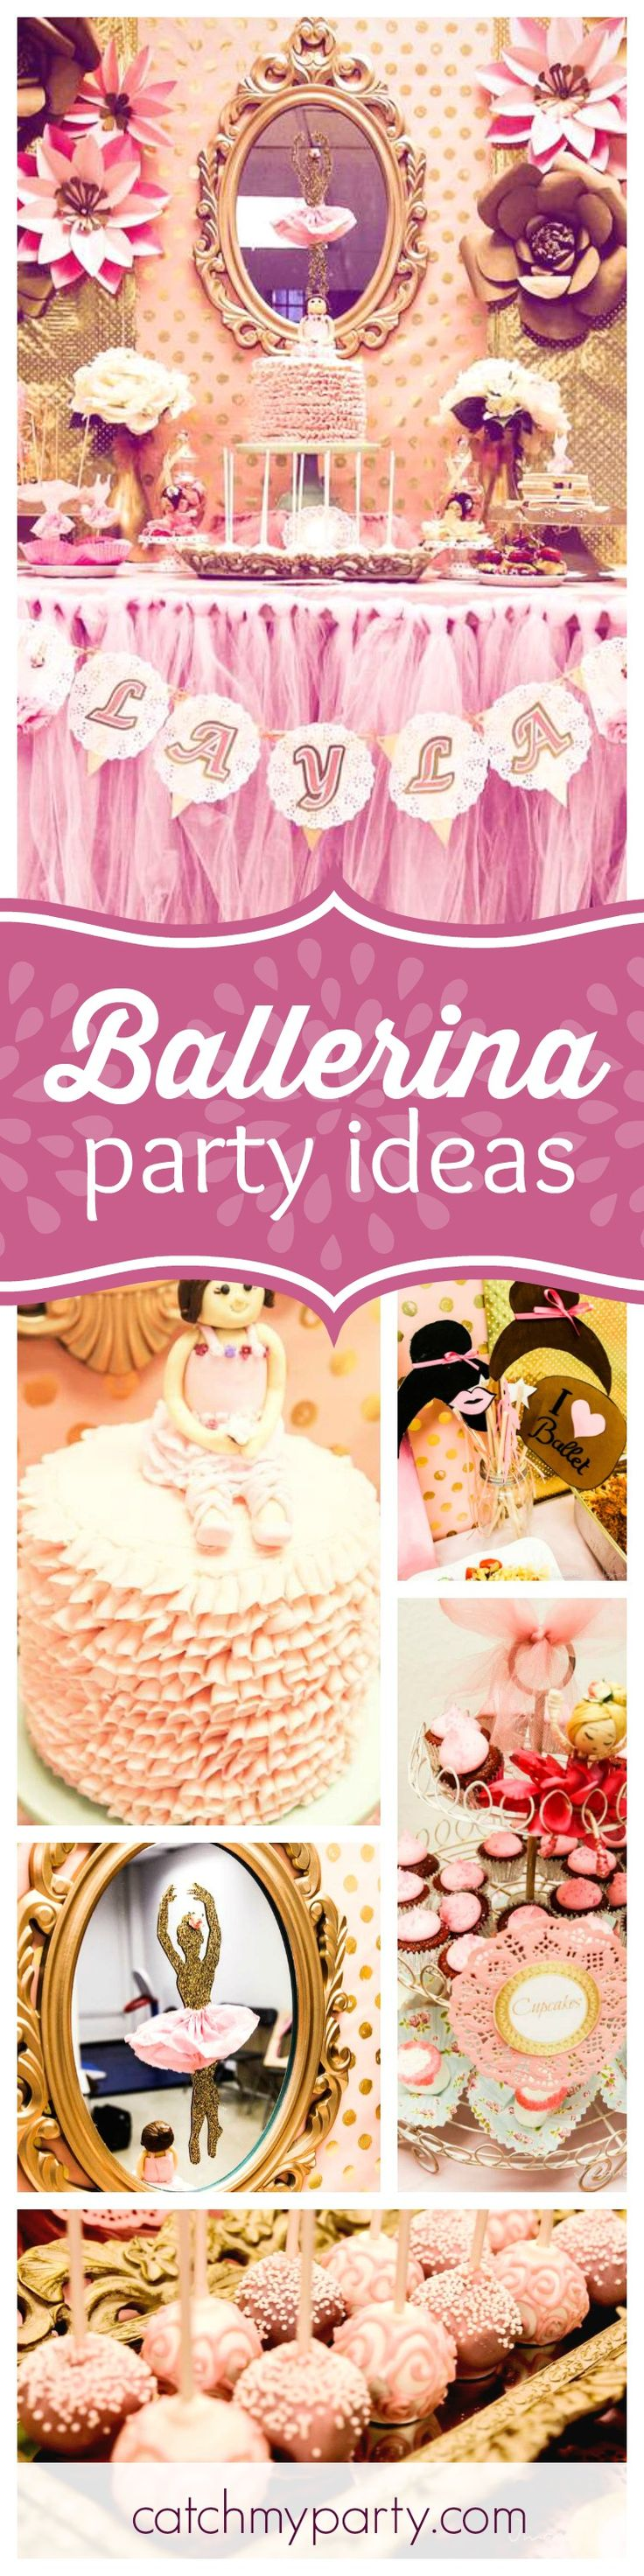 You won't want to miss this beautiful pink and gold Ballerina birthday party. The pink dessert table is gorgeous! See more party ideas and share yours at CatchMyParty.com